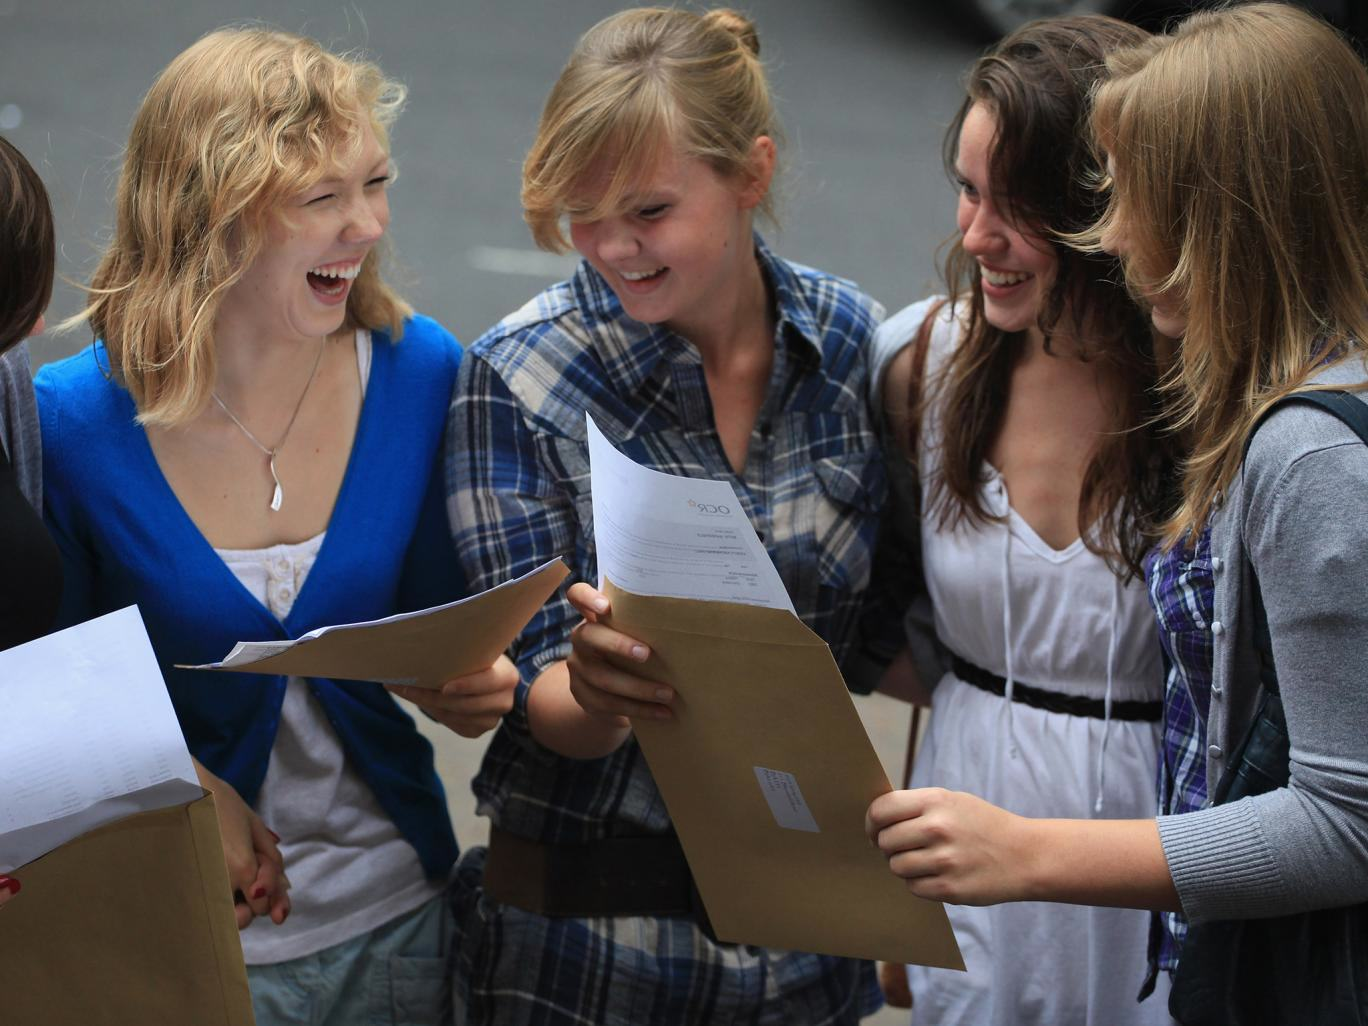 Teacher Implies Exams Not Key To Happiness, Girls Should Get Married Instead blanche comments 2